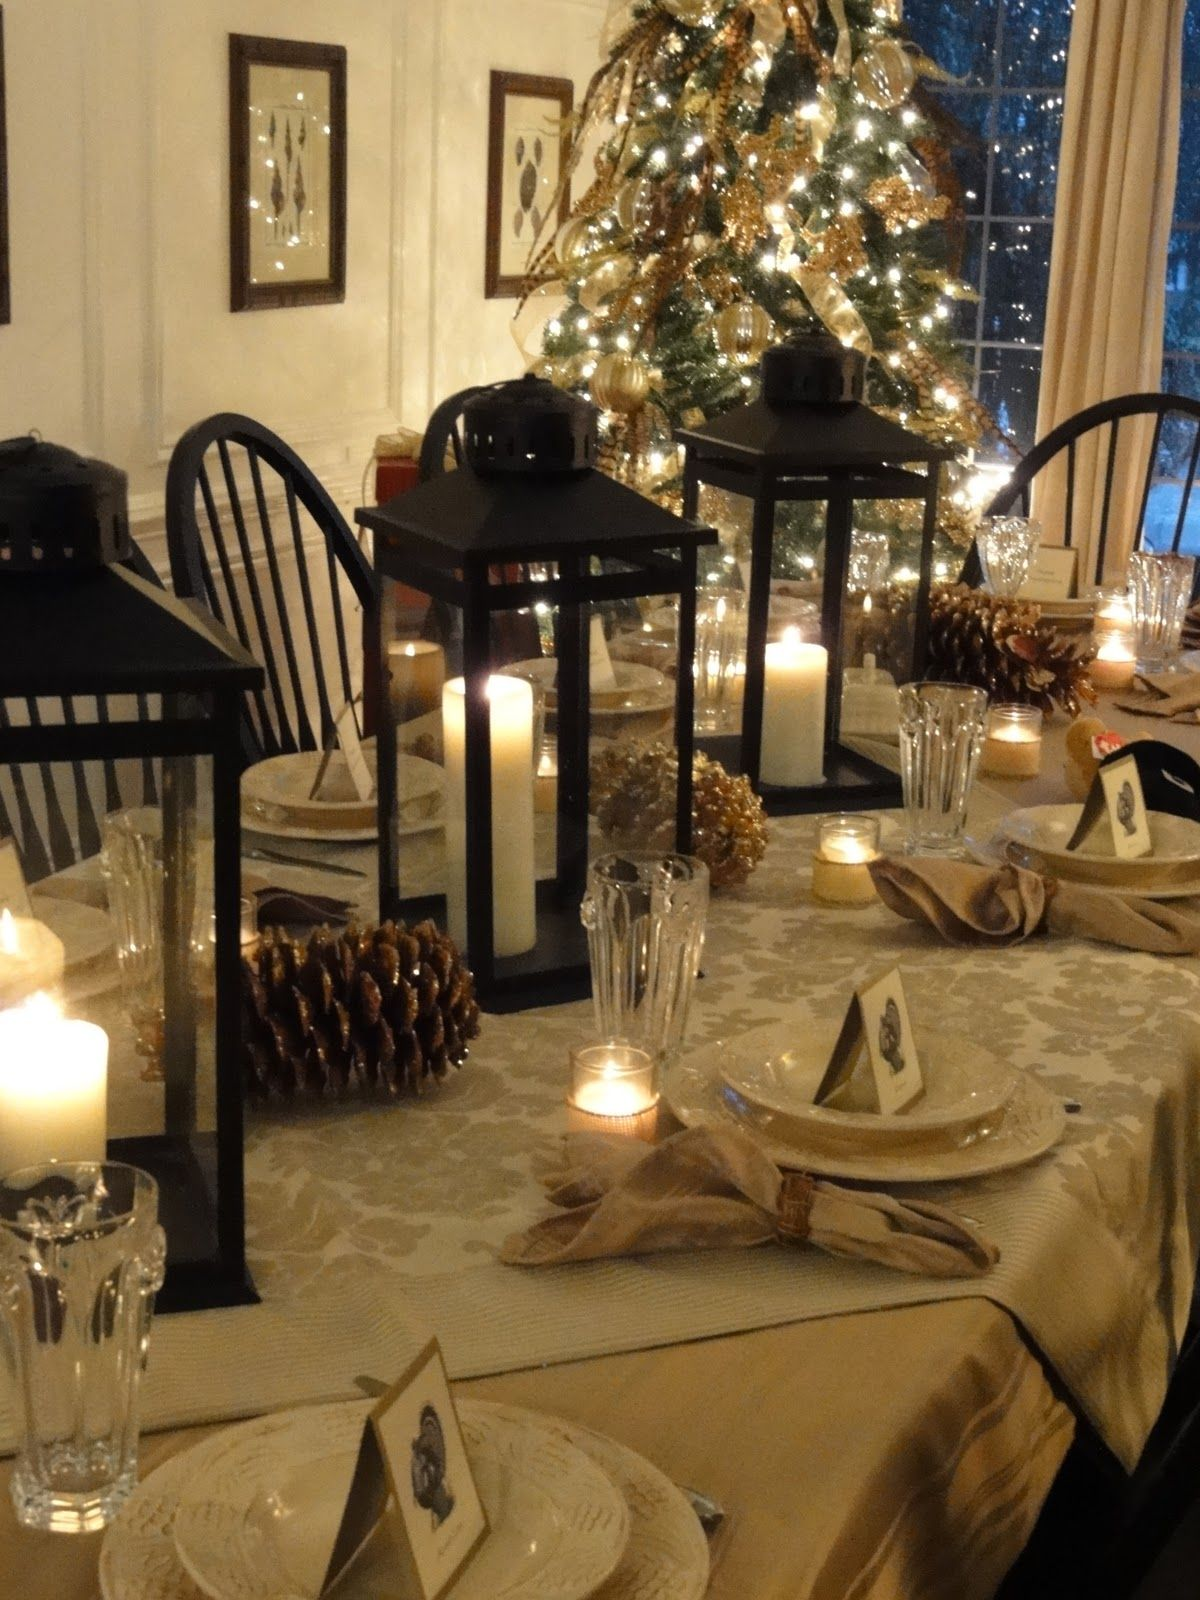 How lovely Simple and elegant Holiday Decorations